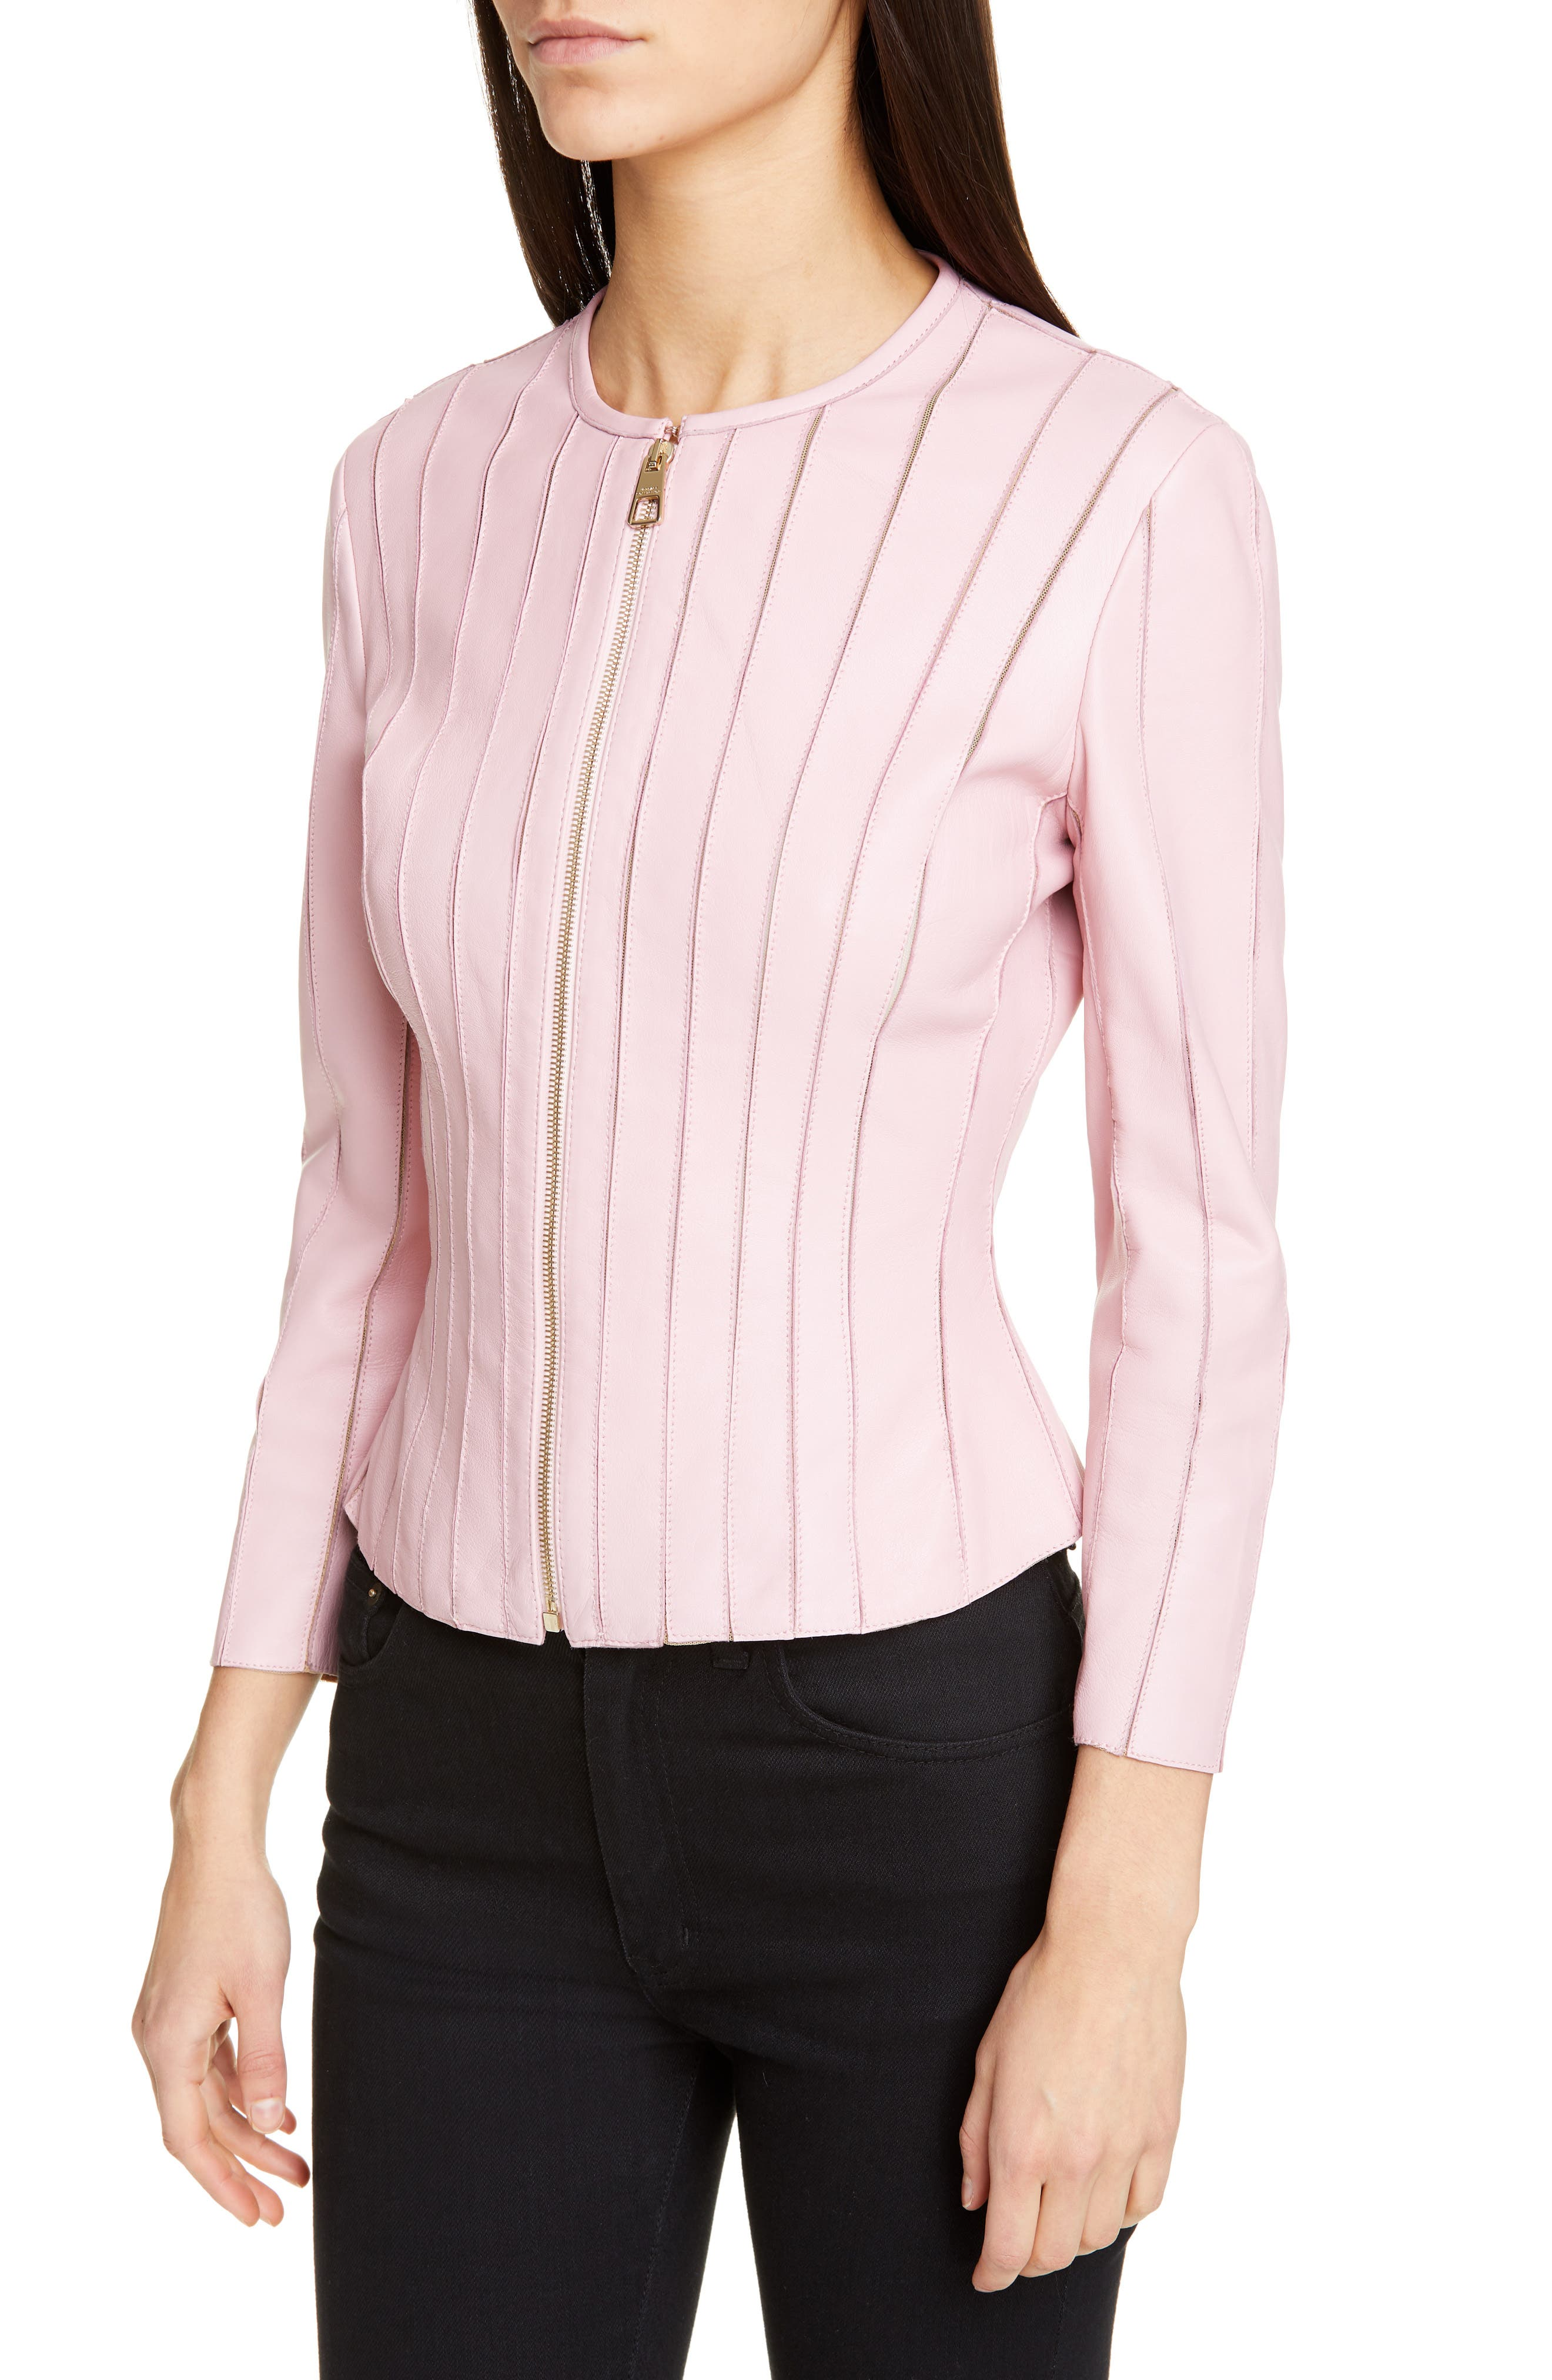 VERSACE COLLECTION, Mesh Rib Leather Jacket, Alternate thumbnail 4, color, PASTEL ROSE